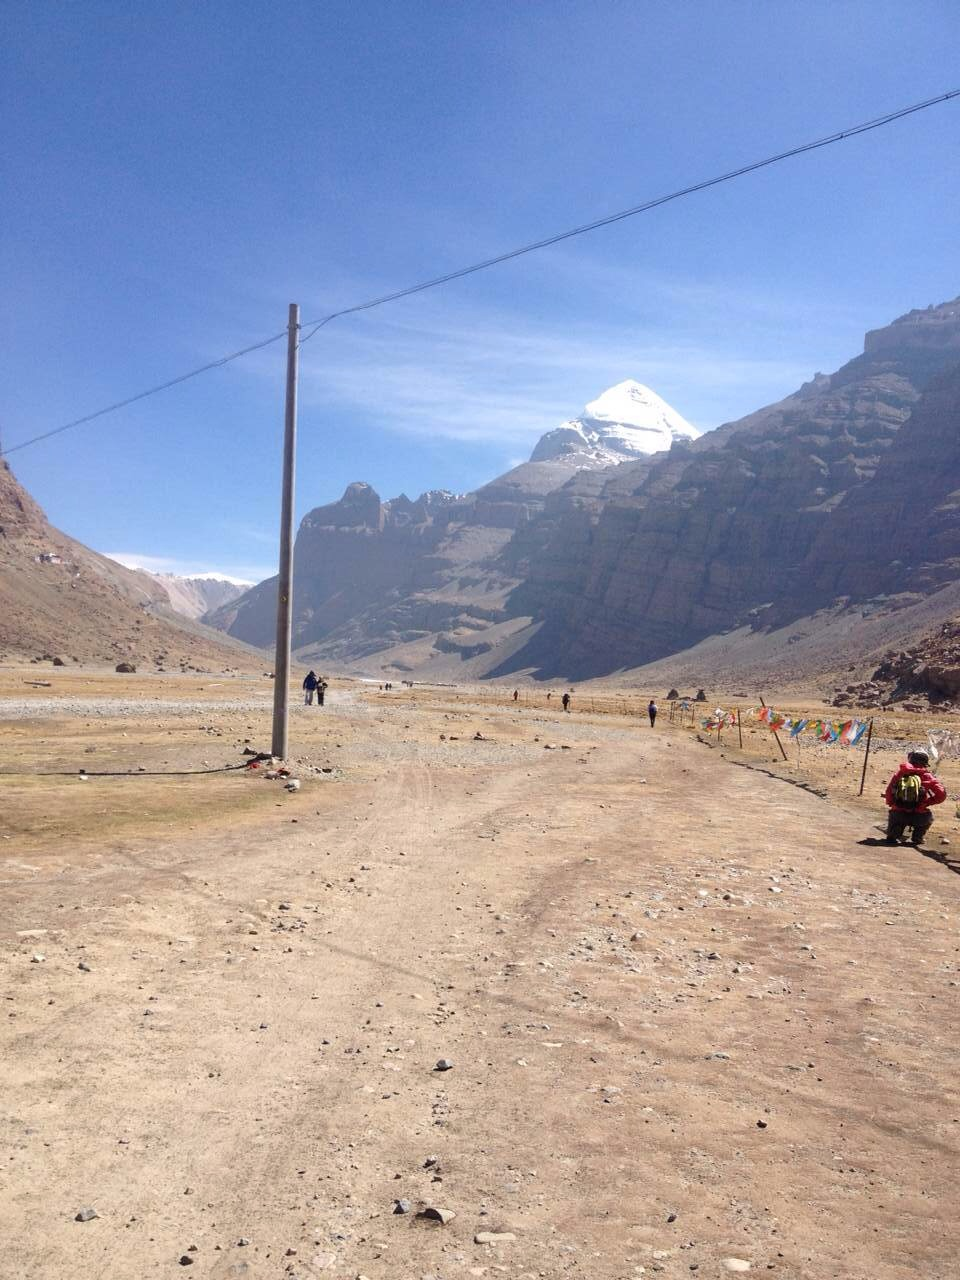 Mt. Kailash is almost around the corner! So excited!